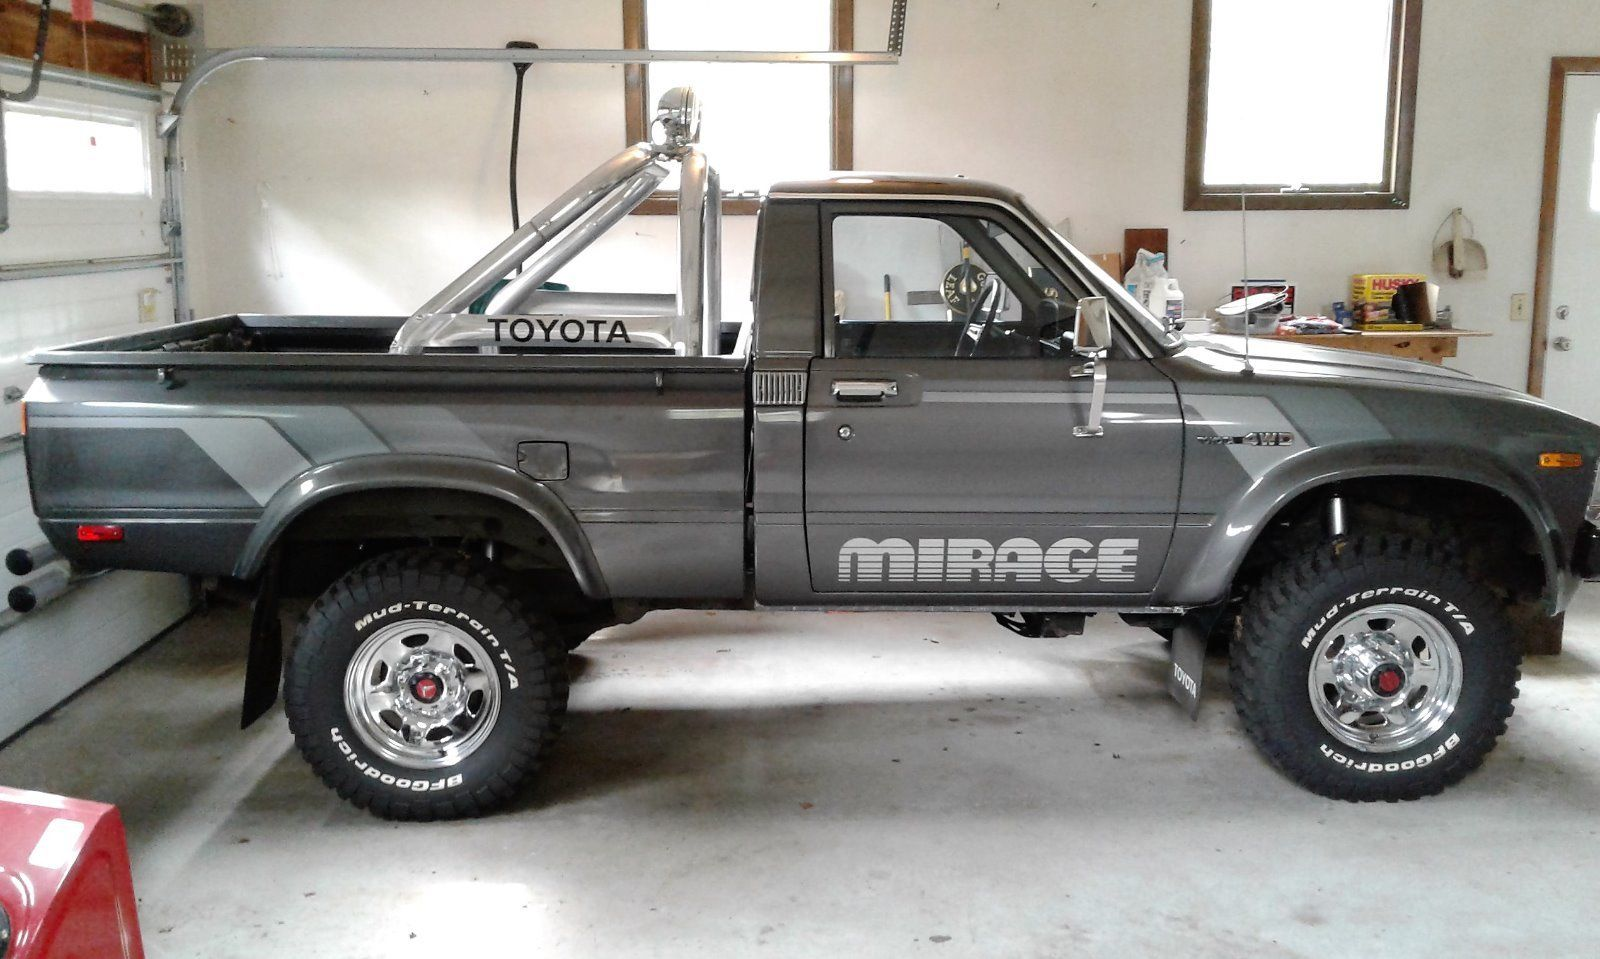 1983 toyota sr 5 4x4 pickup truck mirage limited edition 4x4 friday. Black Bedroom Furniture Sets. Home Design Ideas